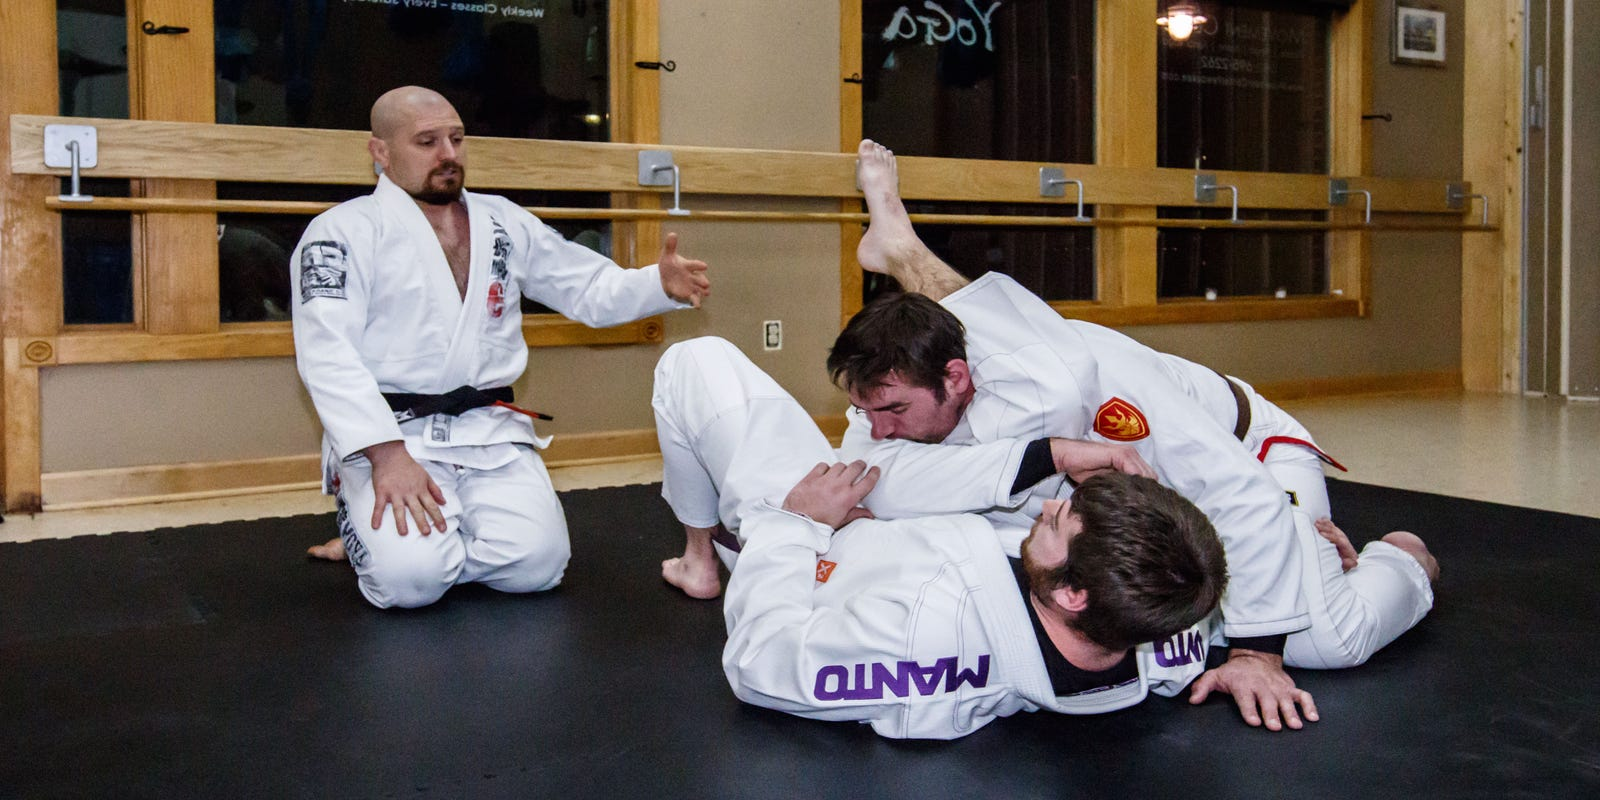 Tessa Fowler Christmas.Pewaukee Gets New Jiujitsu Gym Headed By Former Ufc Coach